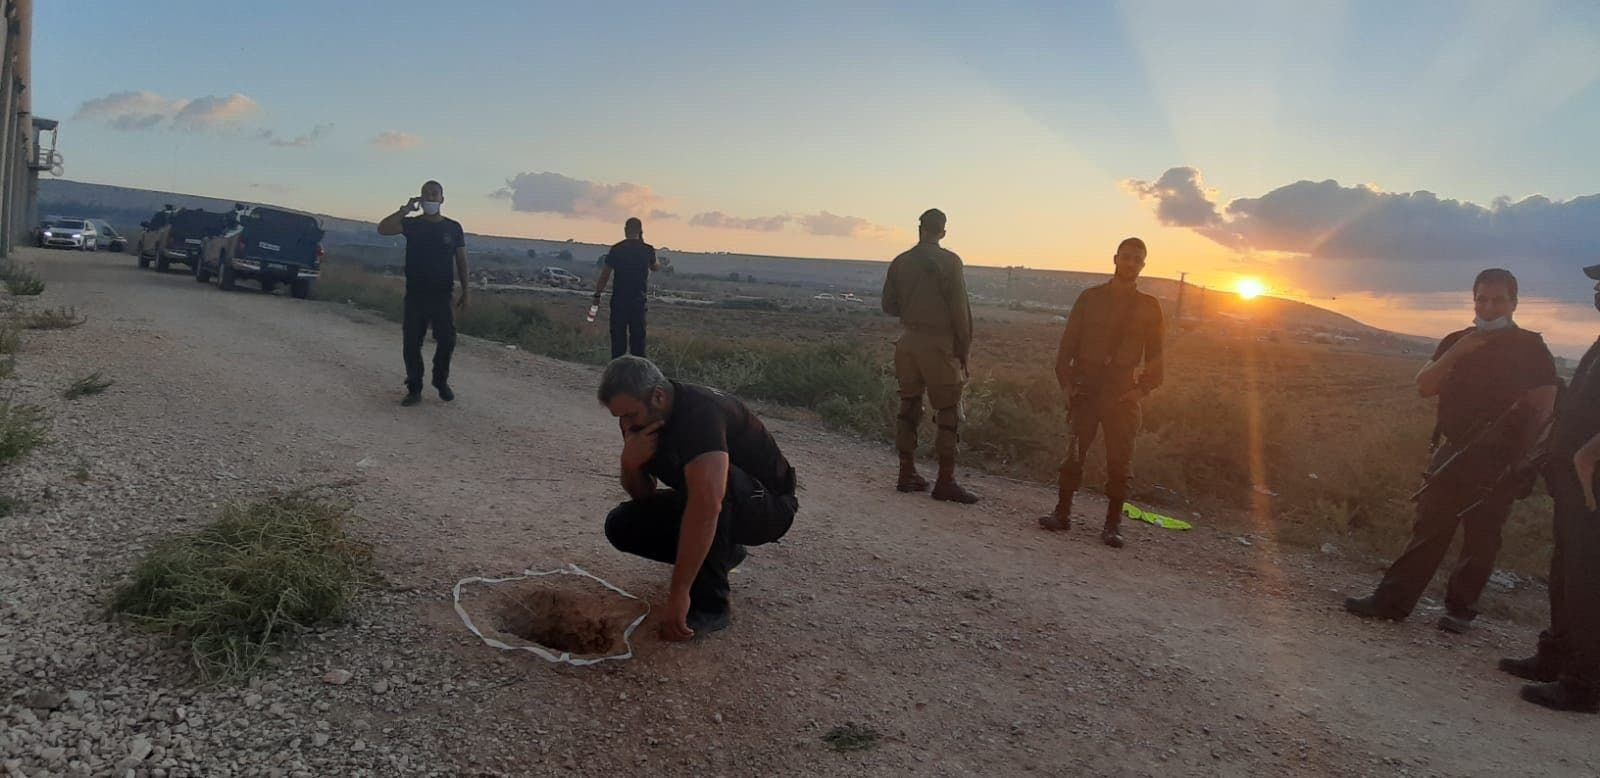 Israel: let's hit Gaza in response to rockets launched from the Strip